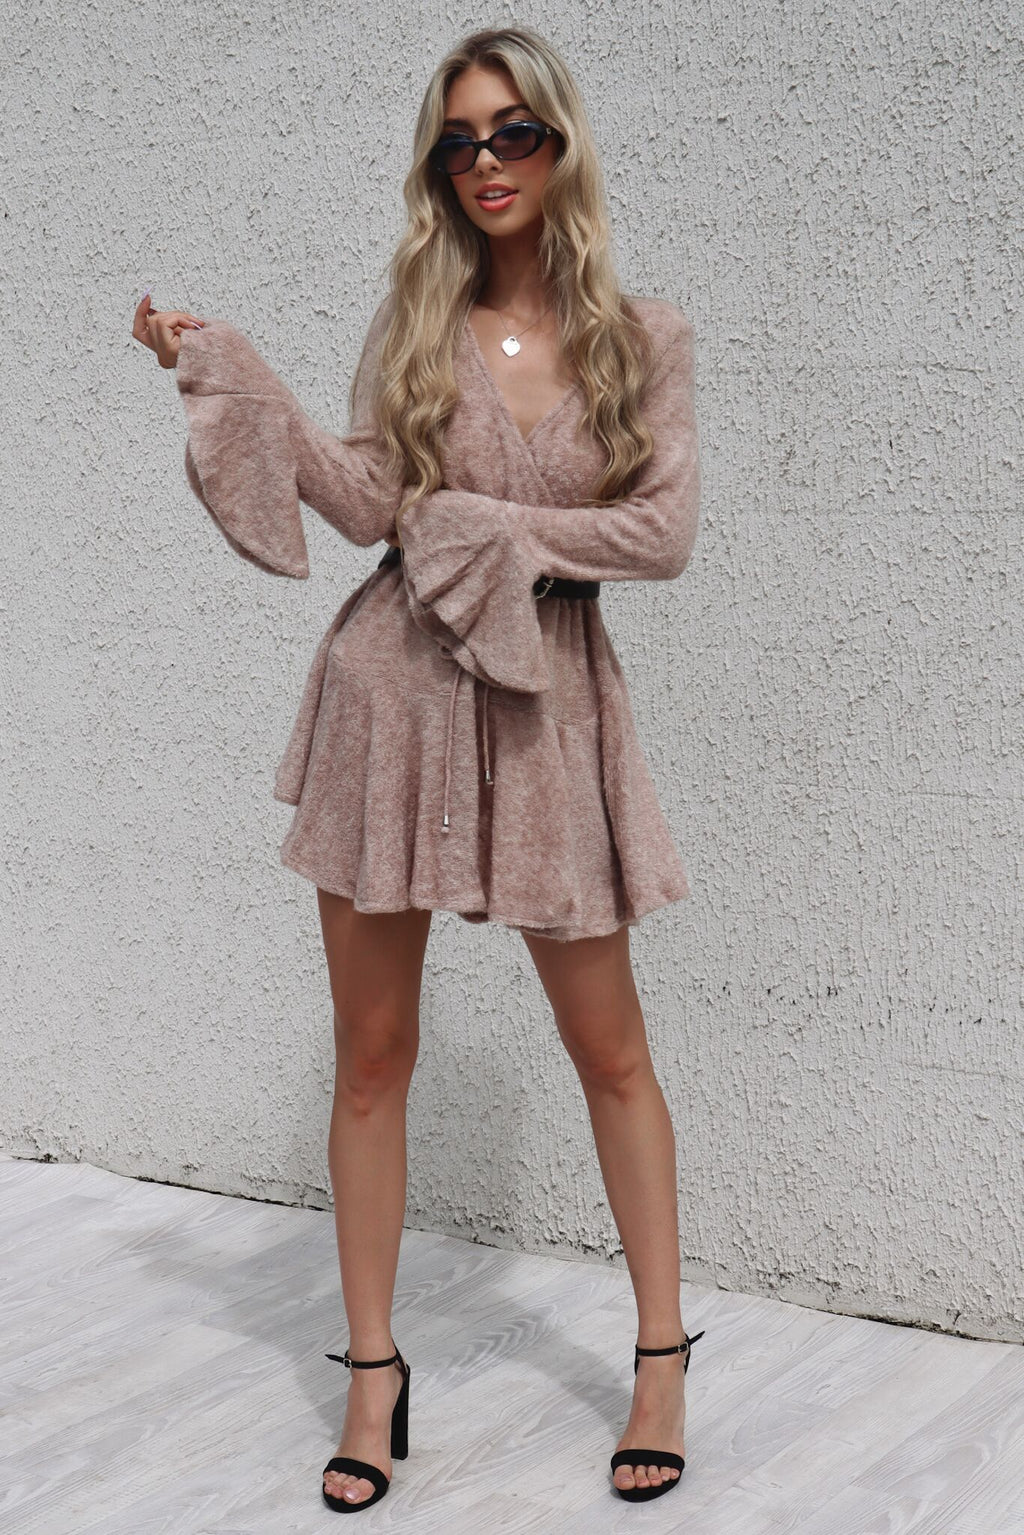 Rose Dianna Knit Dress - Runway Goddess